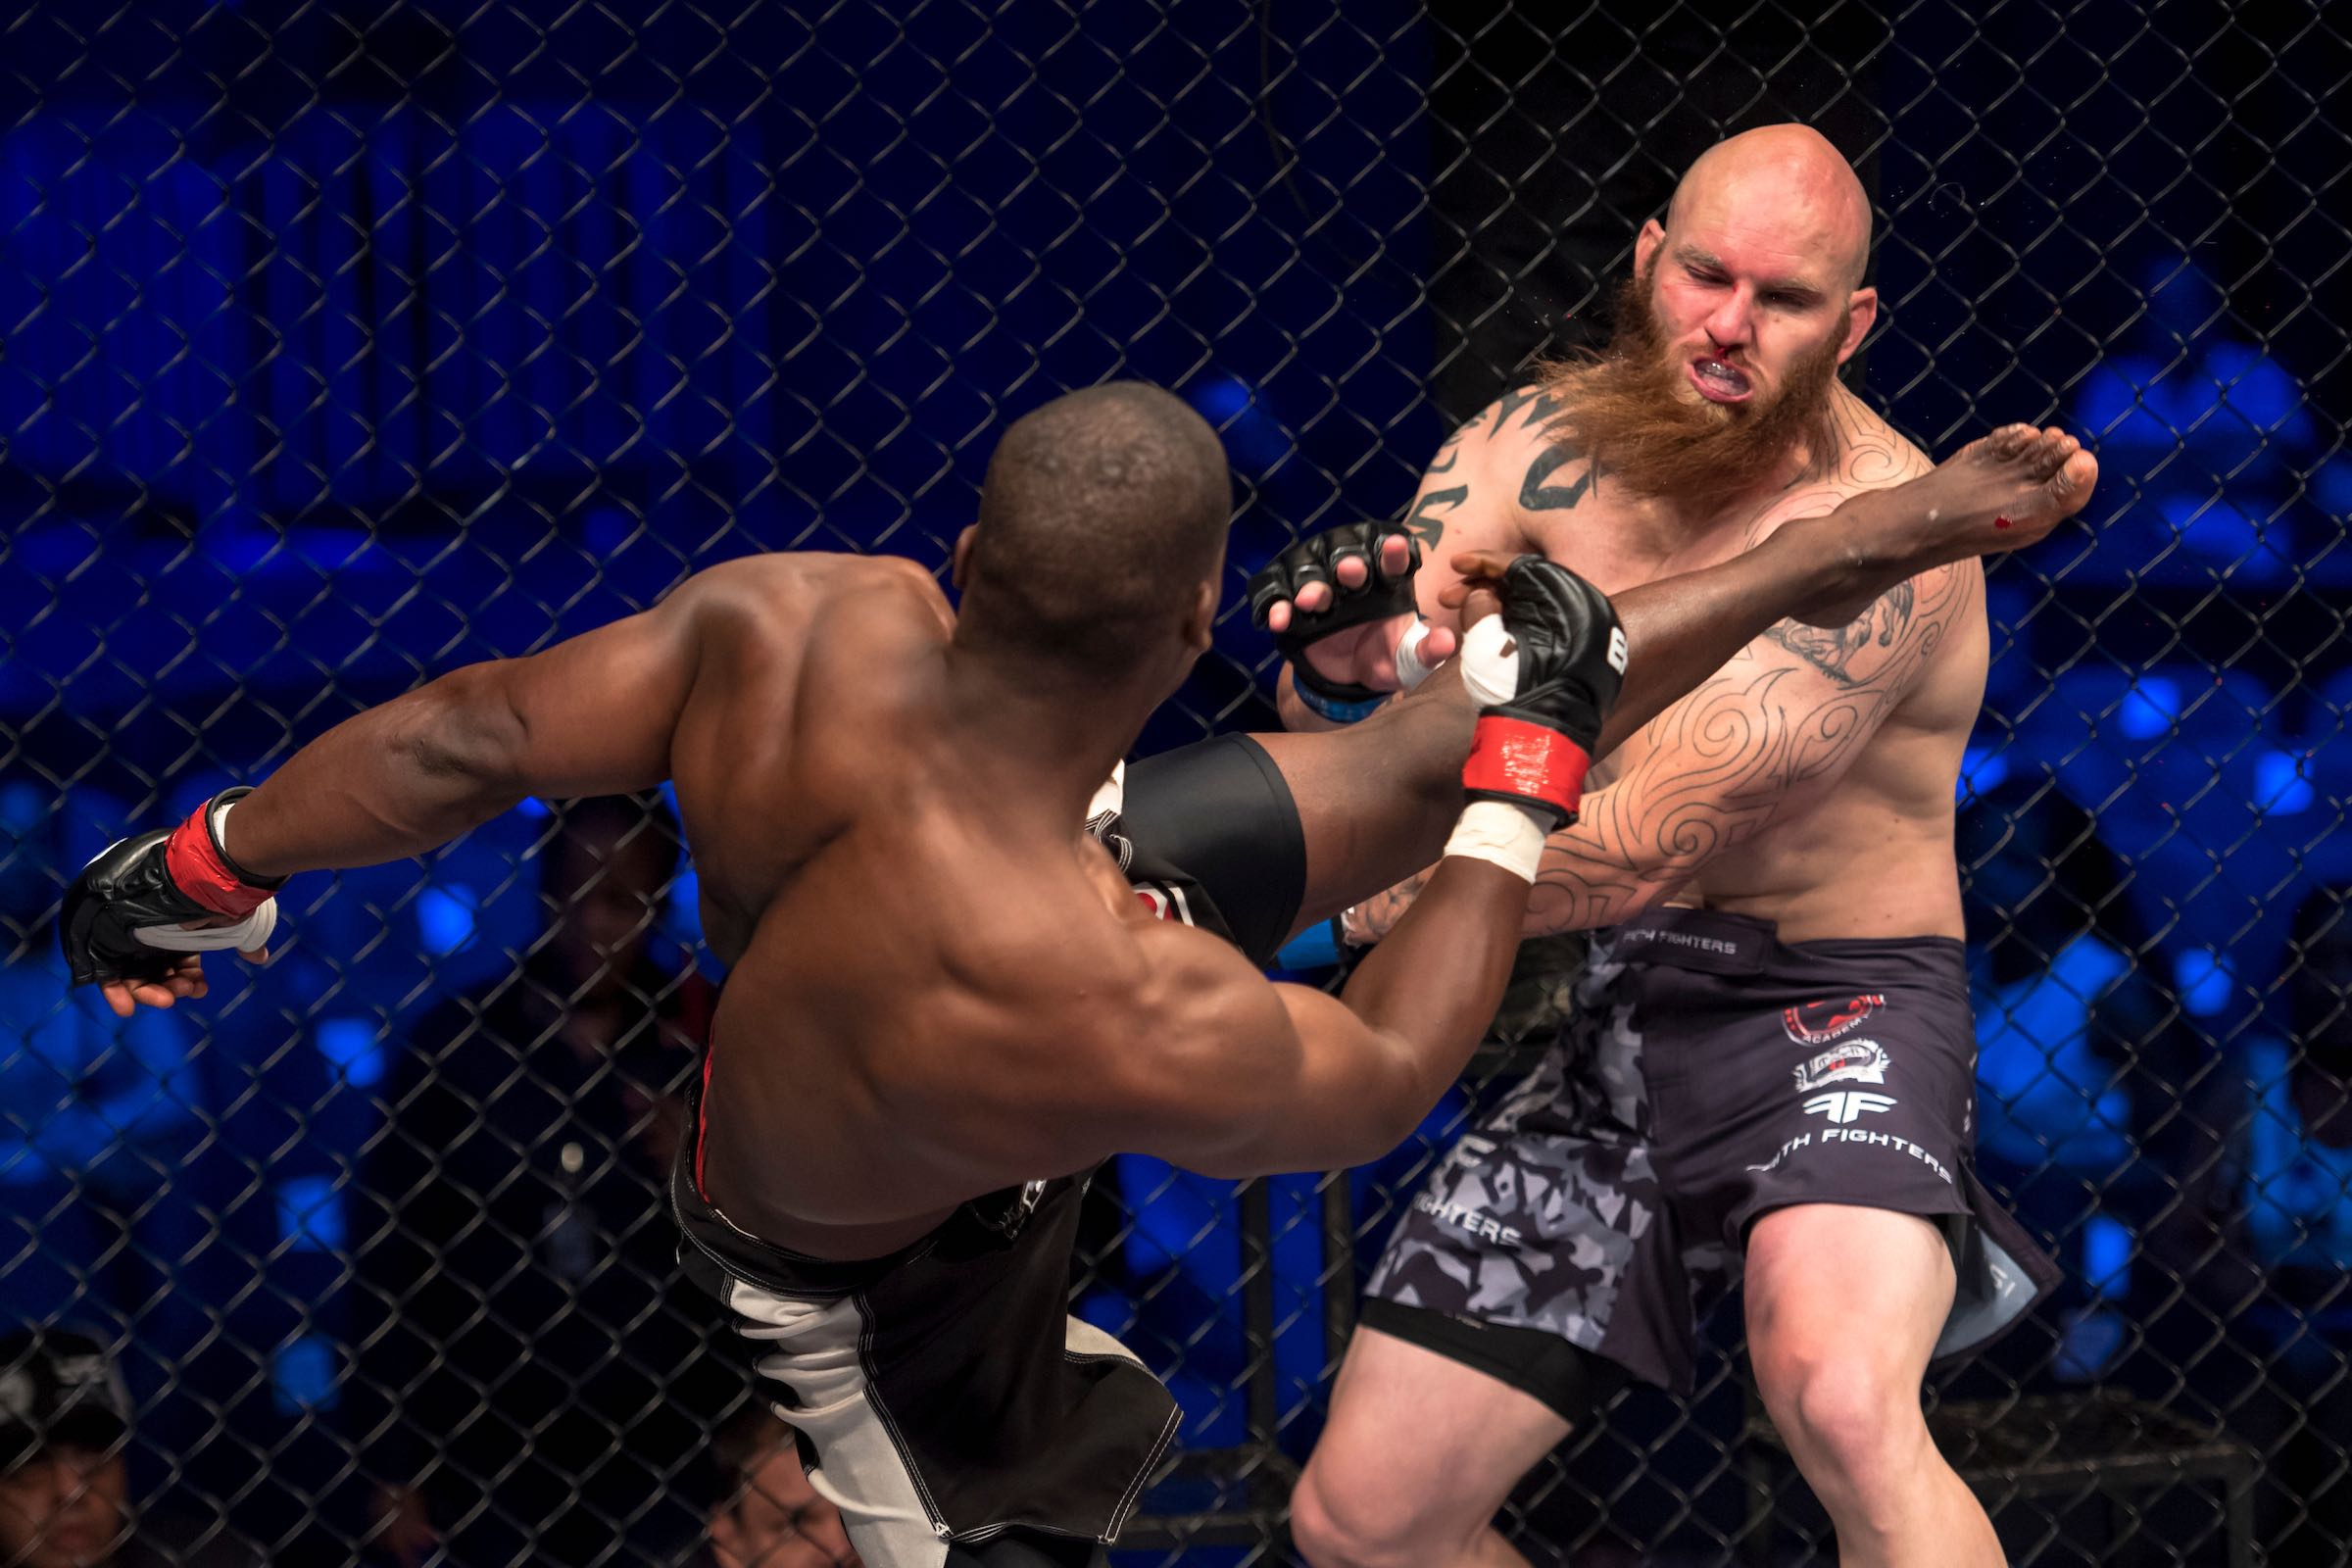 Mixed Martial Arts action at its best at EFC 66 in Time Square, Pretoria